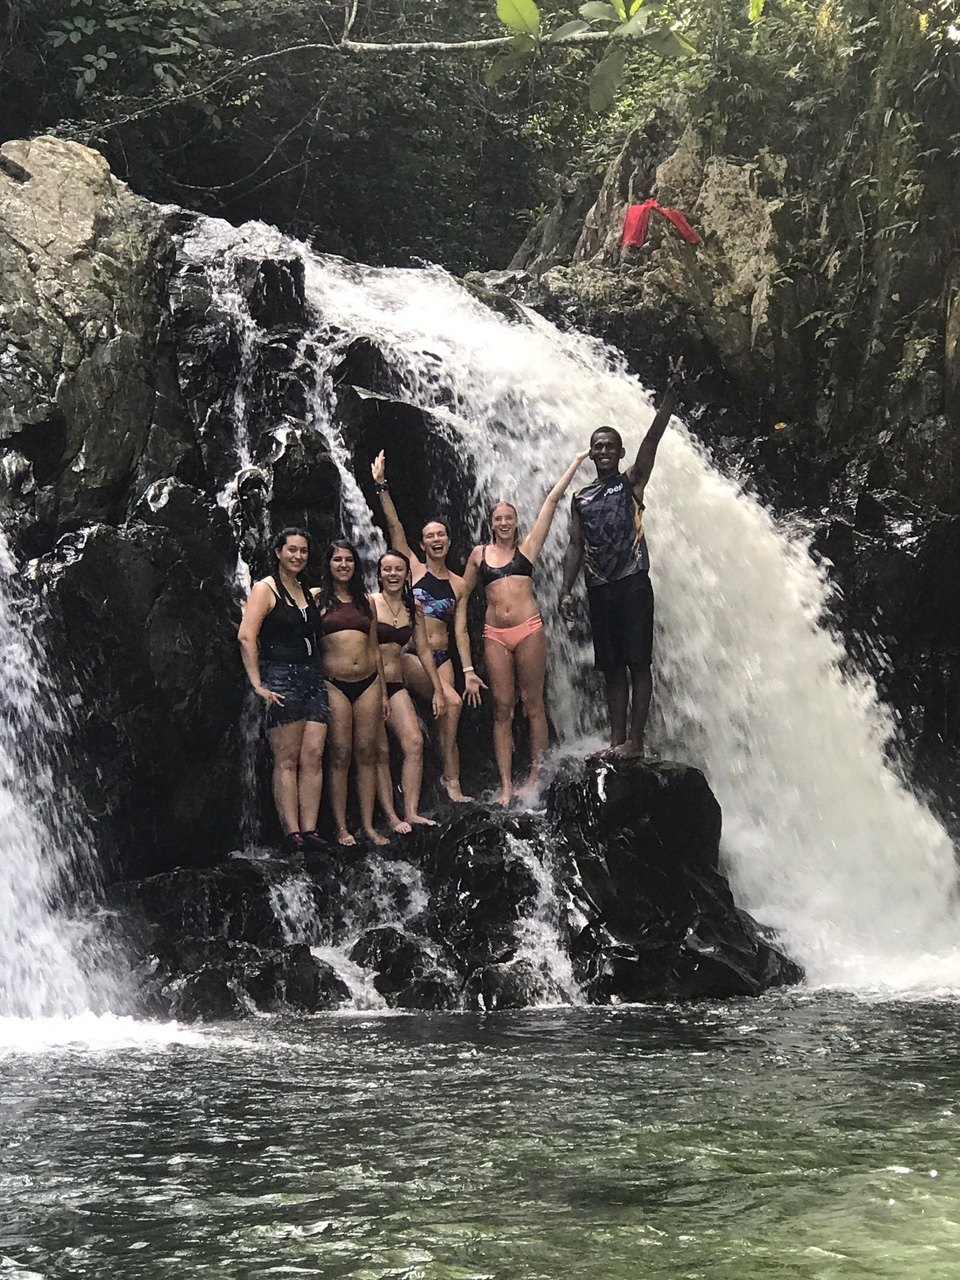 Made it to the waterfall!